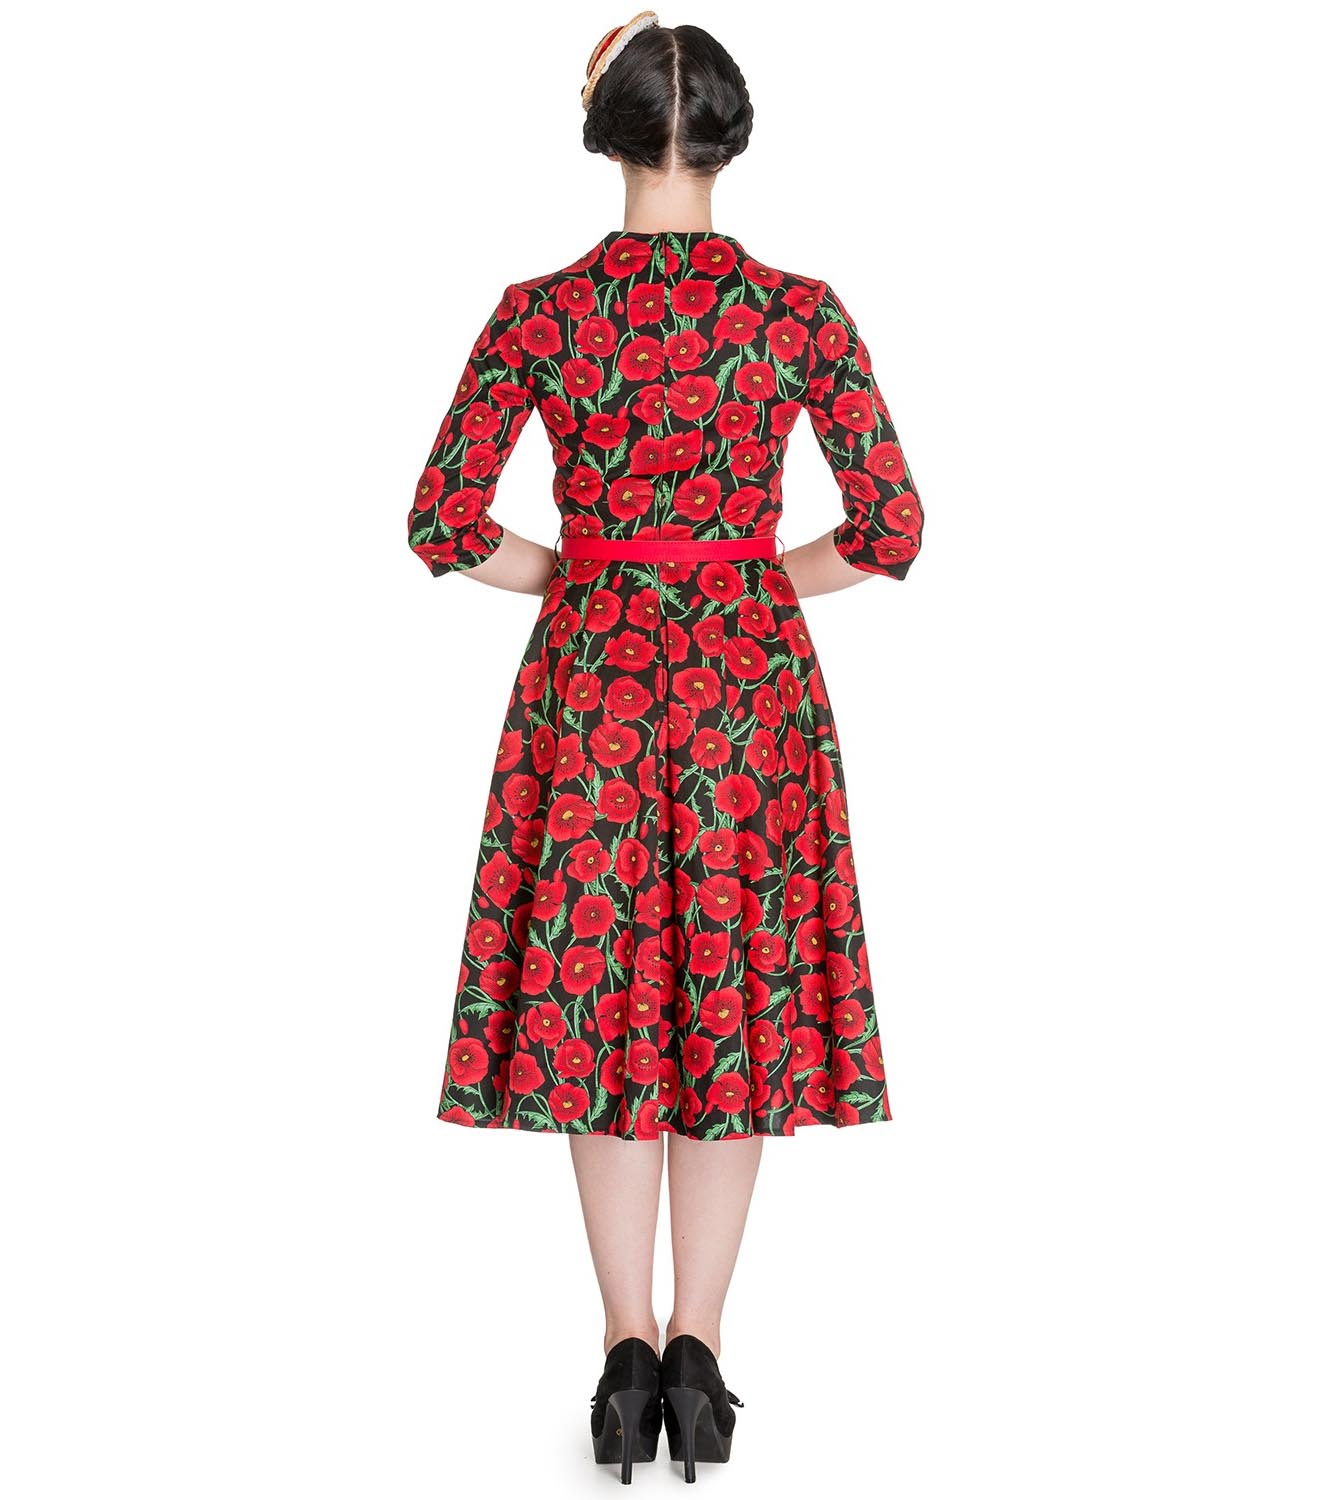 Hell-Bunny-50s-Dress-Pin-Up-POPPY-Red-Black-Flowers-3-4-Sleeve-All-Sizes thumbnail 5